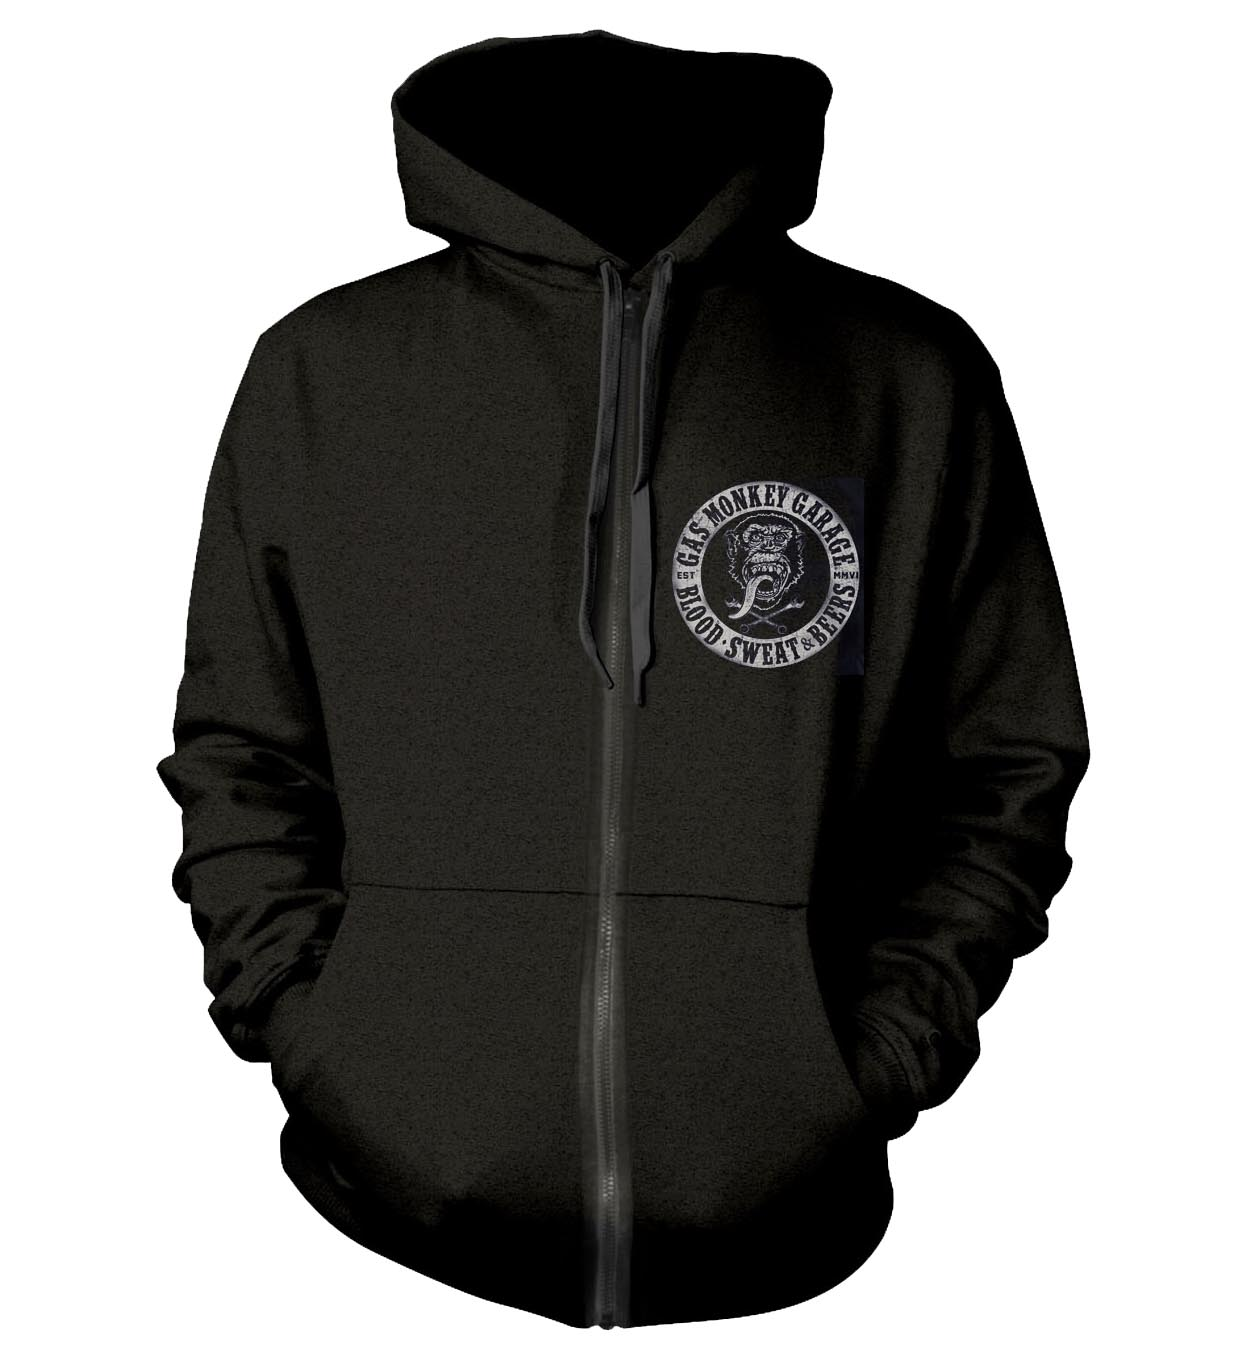 Official-PH-GAS-MONKEY-GARAGE-Hoody-Hoodie-Distressed-LOGO-Zip-All-Sizes thumbnail 19